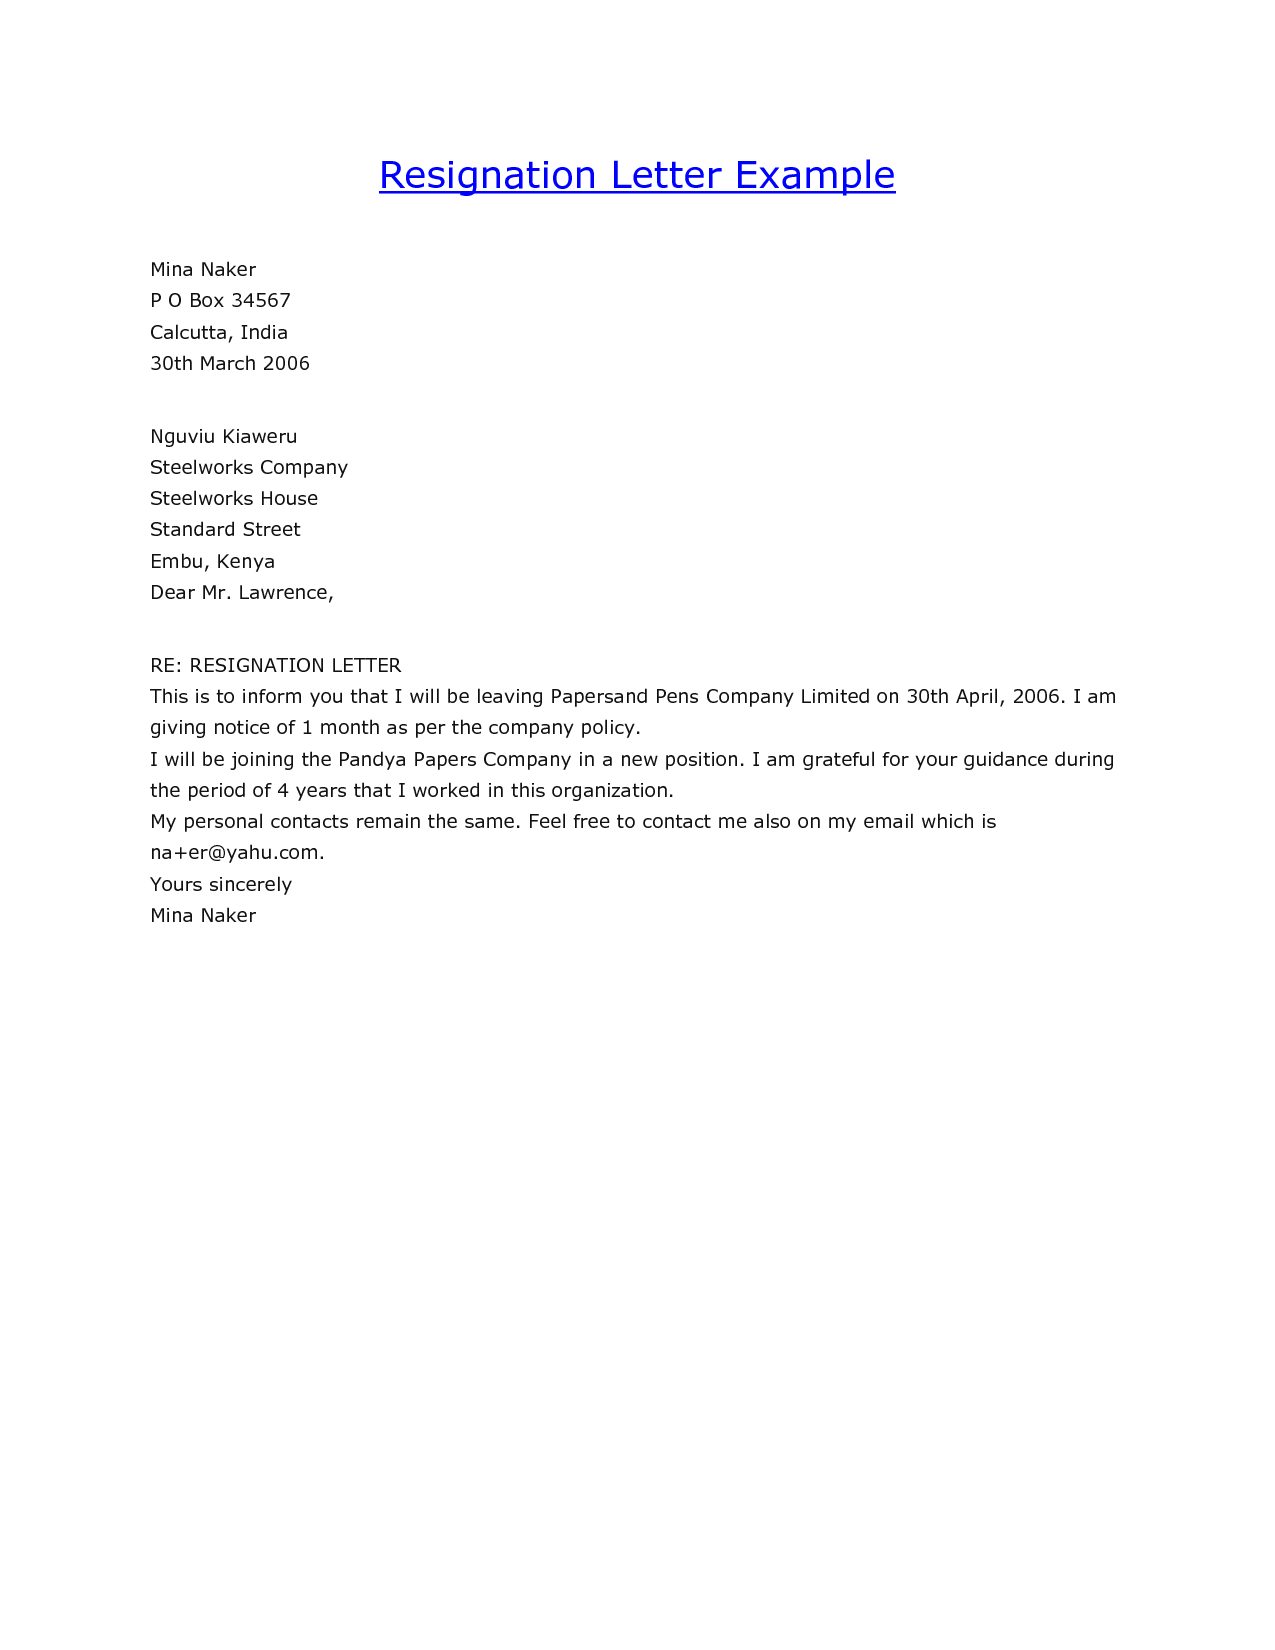 Stunning Resignation Letter Sample Format Example Ideas Office Through Email  Samples Job Cover Letters  Cover Letter Email